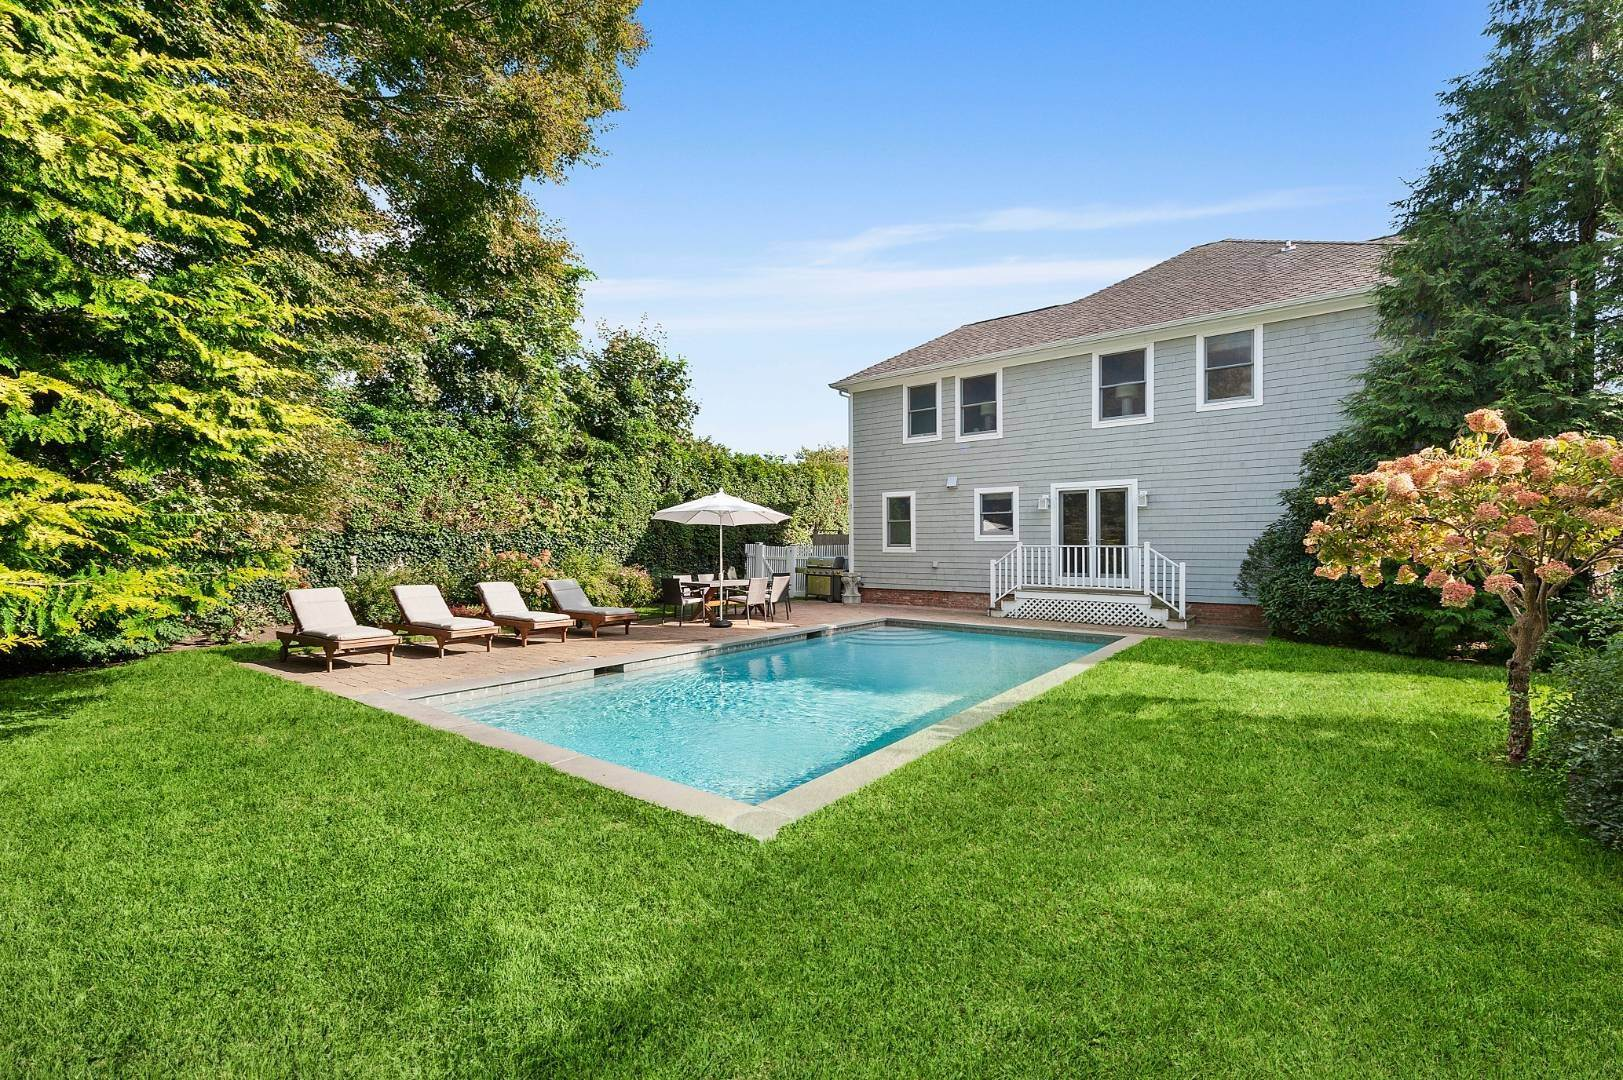 Single Family Home for Sale at Beautifully Renovated In Sh Village! Southampton, NY 11968